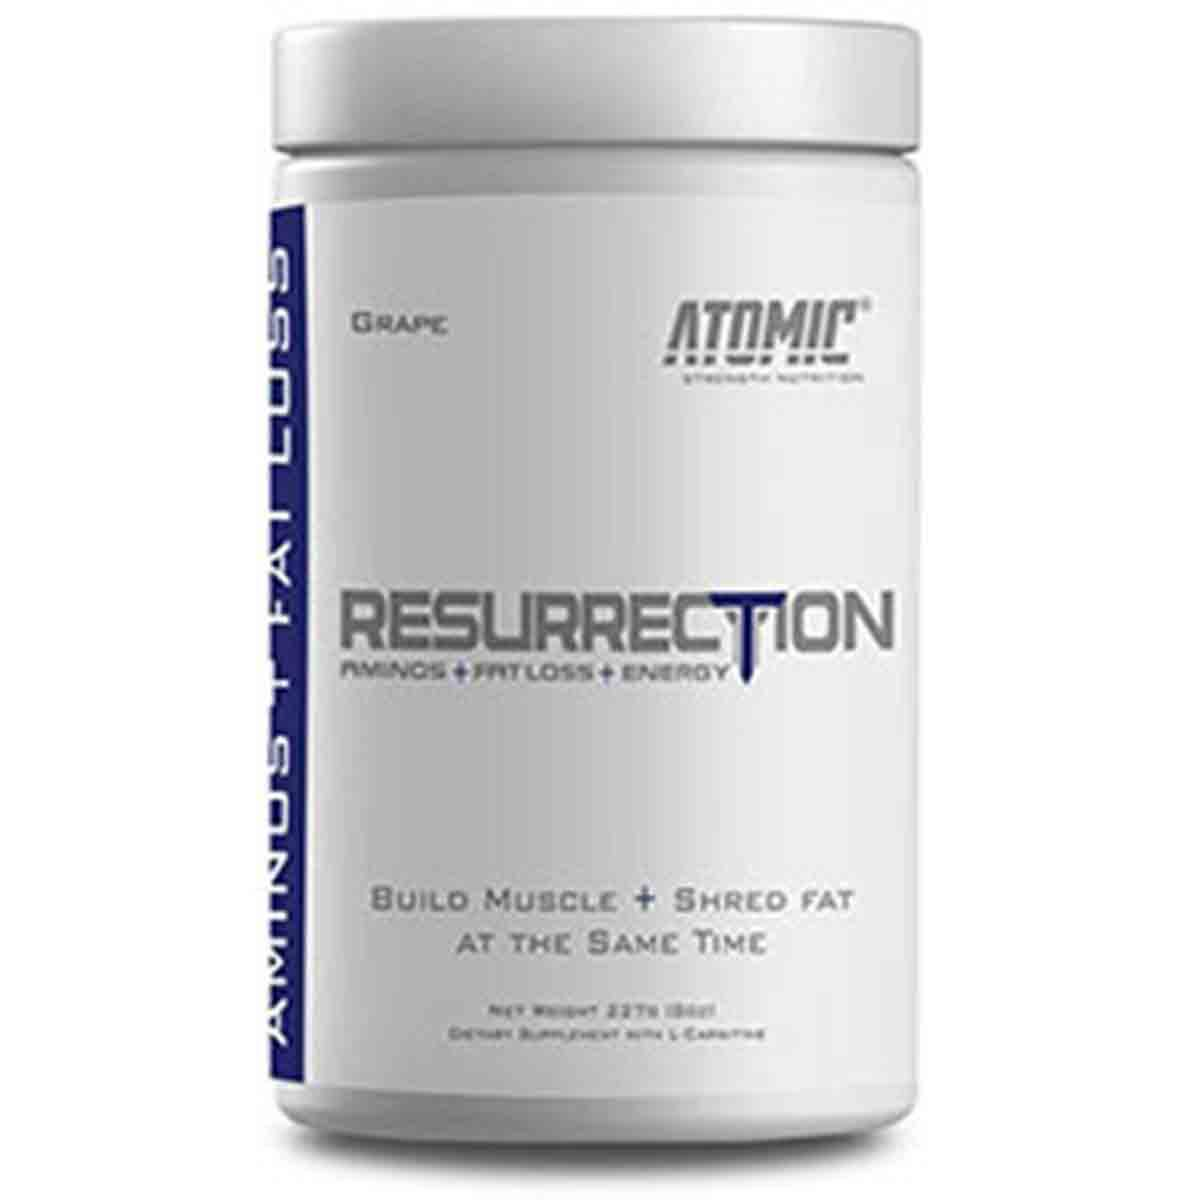 Atomic Strength Nutrition Resurrection